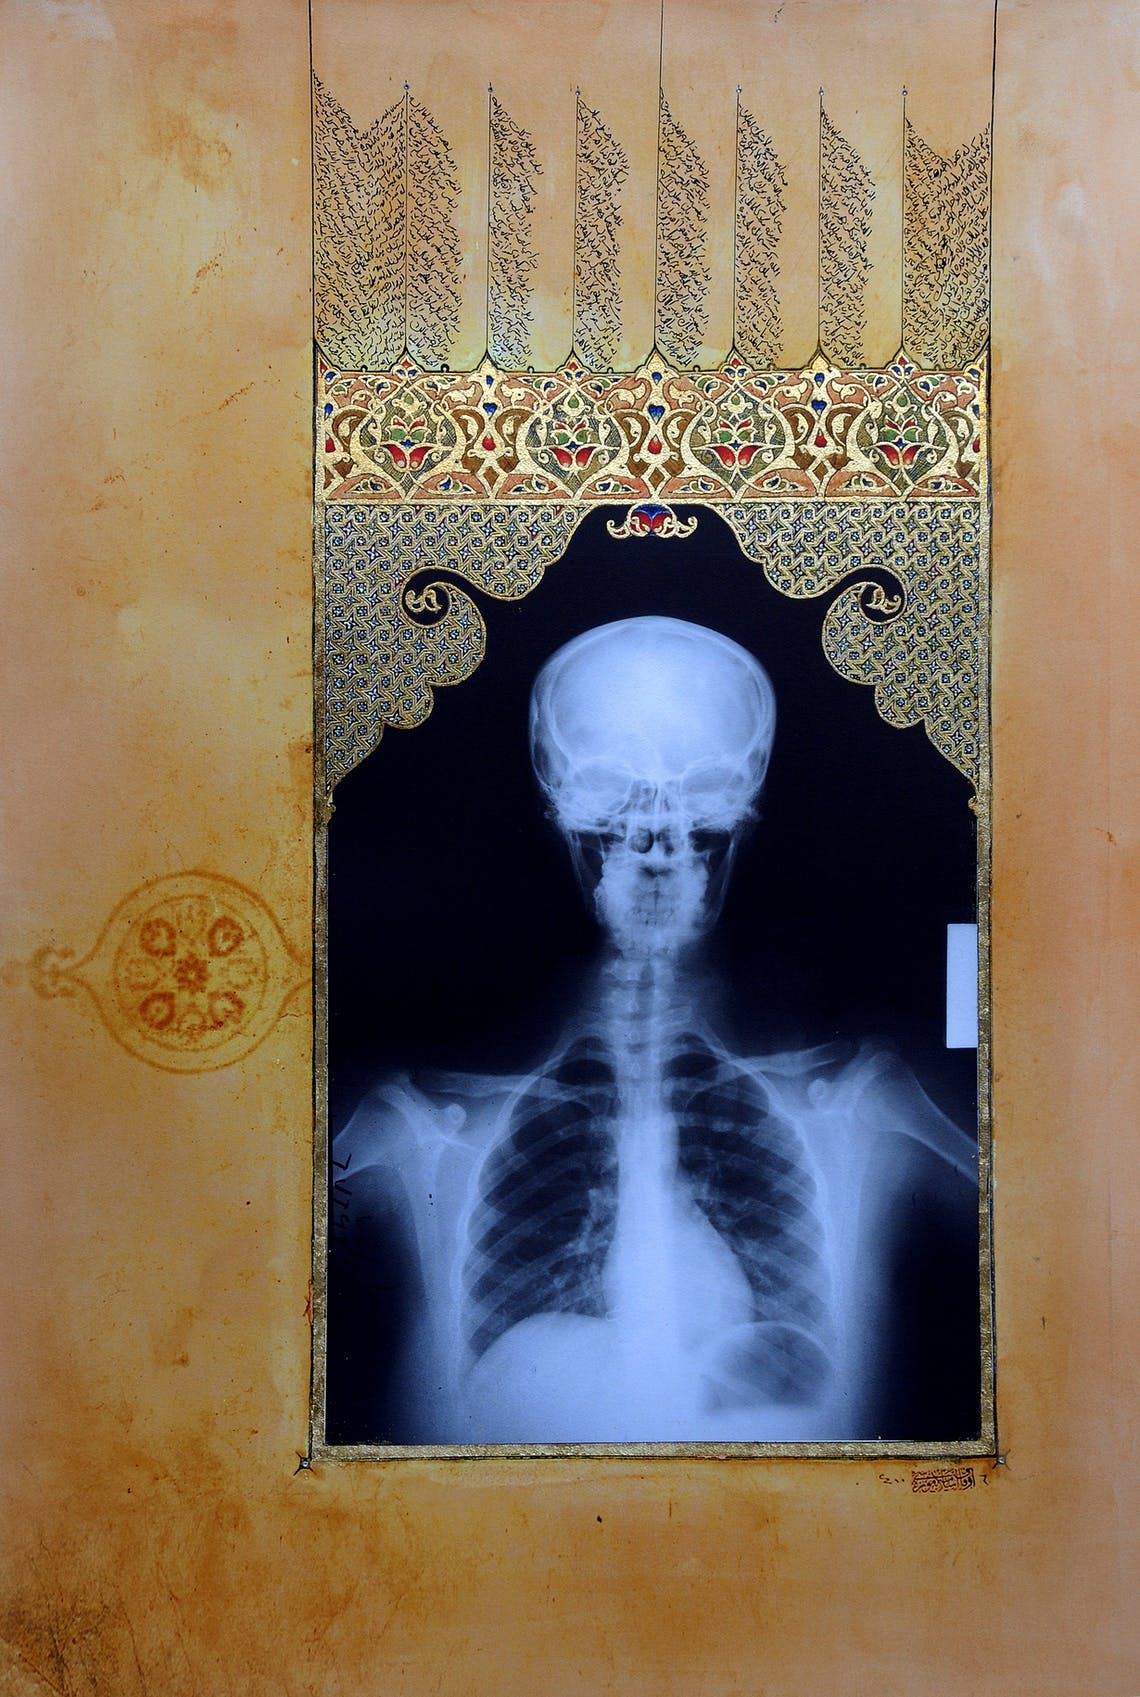 Mihrab Illumination I 2009 Ahmed Mater Gold lead tea pomegranate Dupont Chinese ink crystals and offset X Ray print and mixed media on archival Arche paper 147 x 105 105cm 147cm